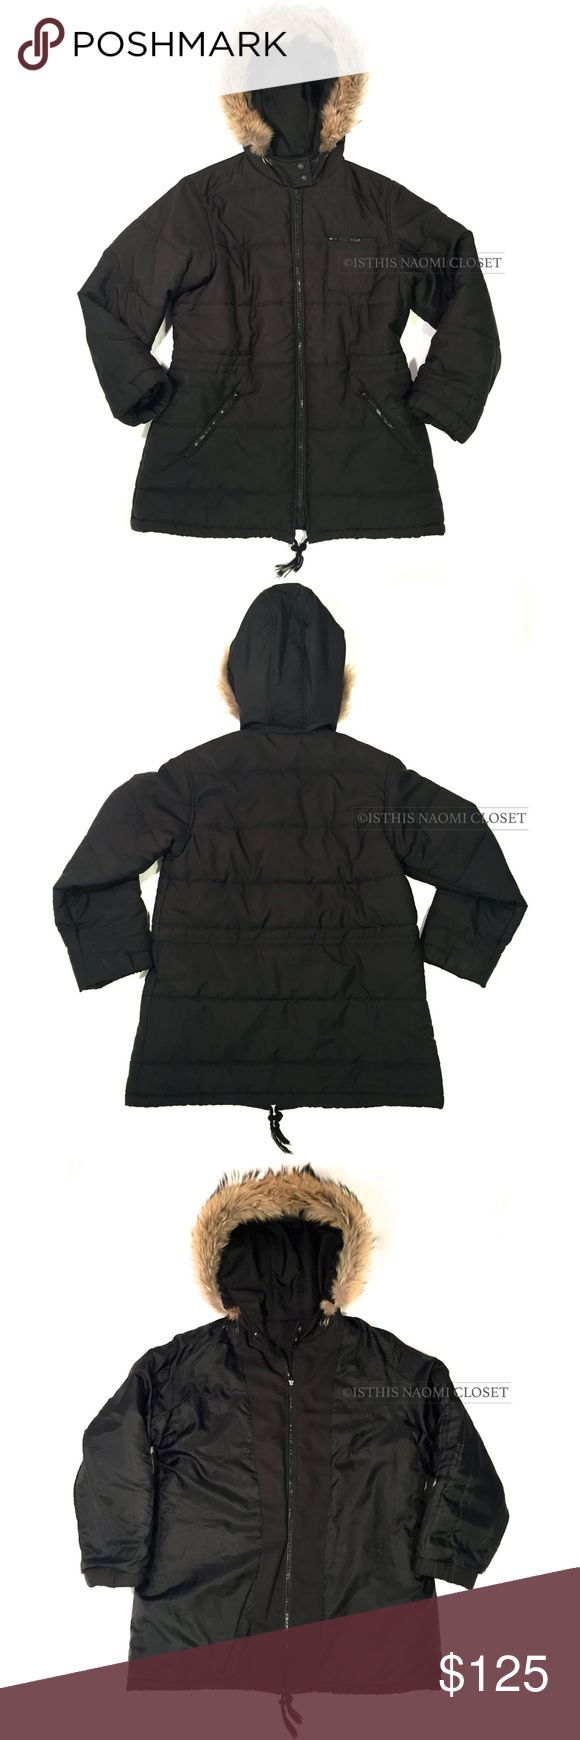 EMANUELE CURCI Italy Parka Fox Fur Hood 177. EMANUELE CURCI Made In Italy Black Parka Style Fox Hood Women M Coat. Black shell with one right breasted zip pocket with 2 front zip slant pockets. Thick down feather fill coat. Hood with fur seam with double button. No mid drawstring at waistline. Much wear, every zipper has wear, outer-shell wear and inner lining wear. HOWEVER CLEAN AND IN GREAT CONDITION Emanuele Curci Jackets & Coats Puffers